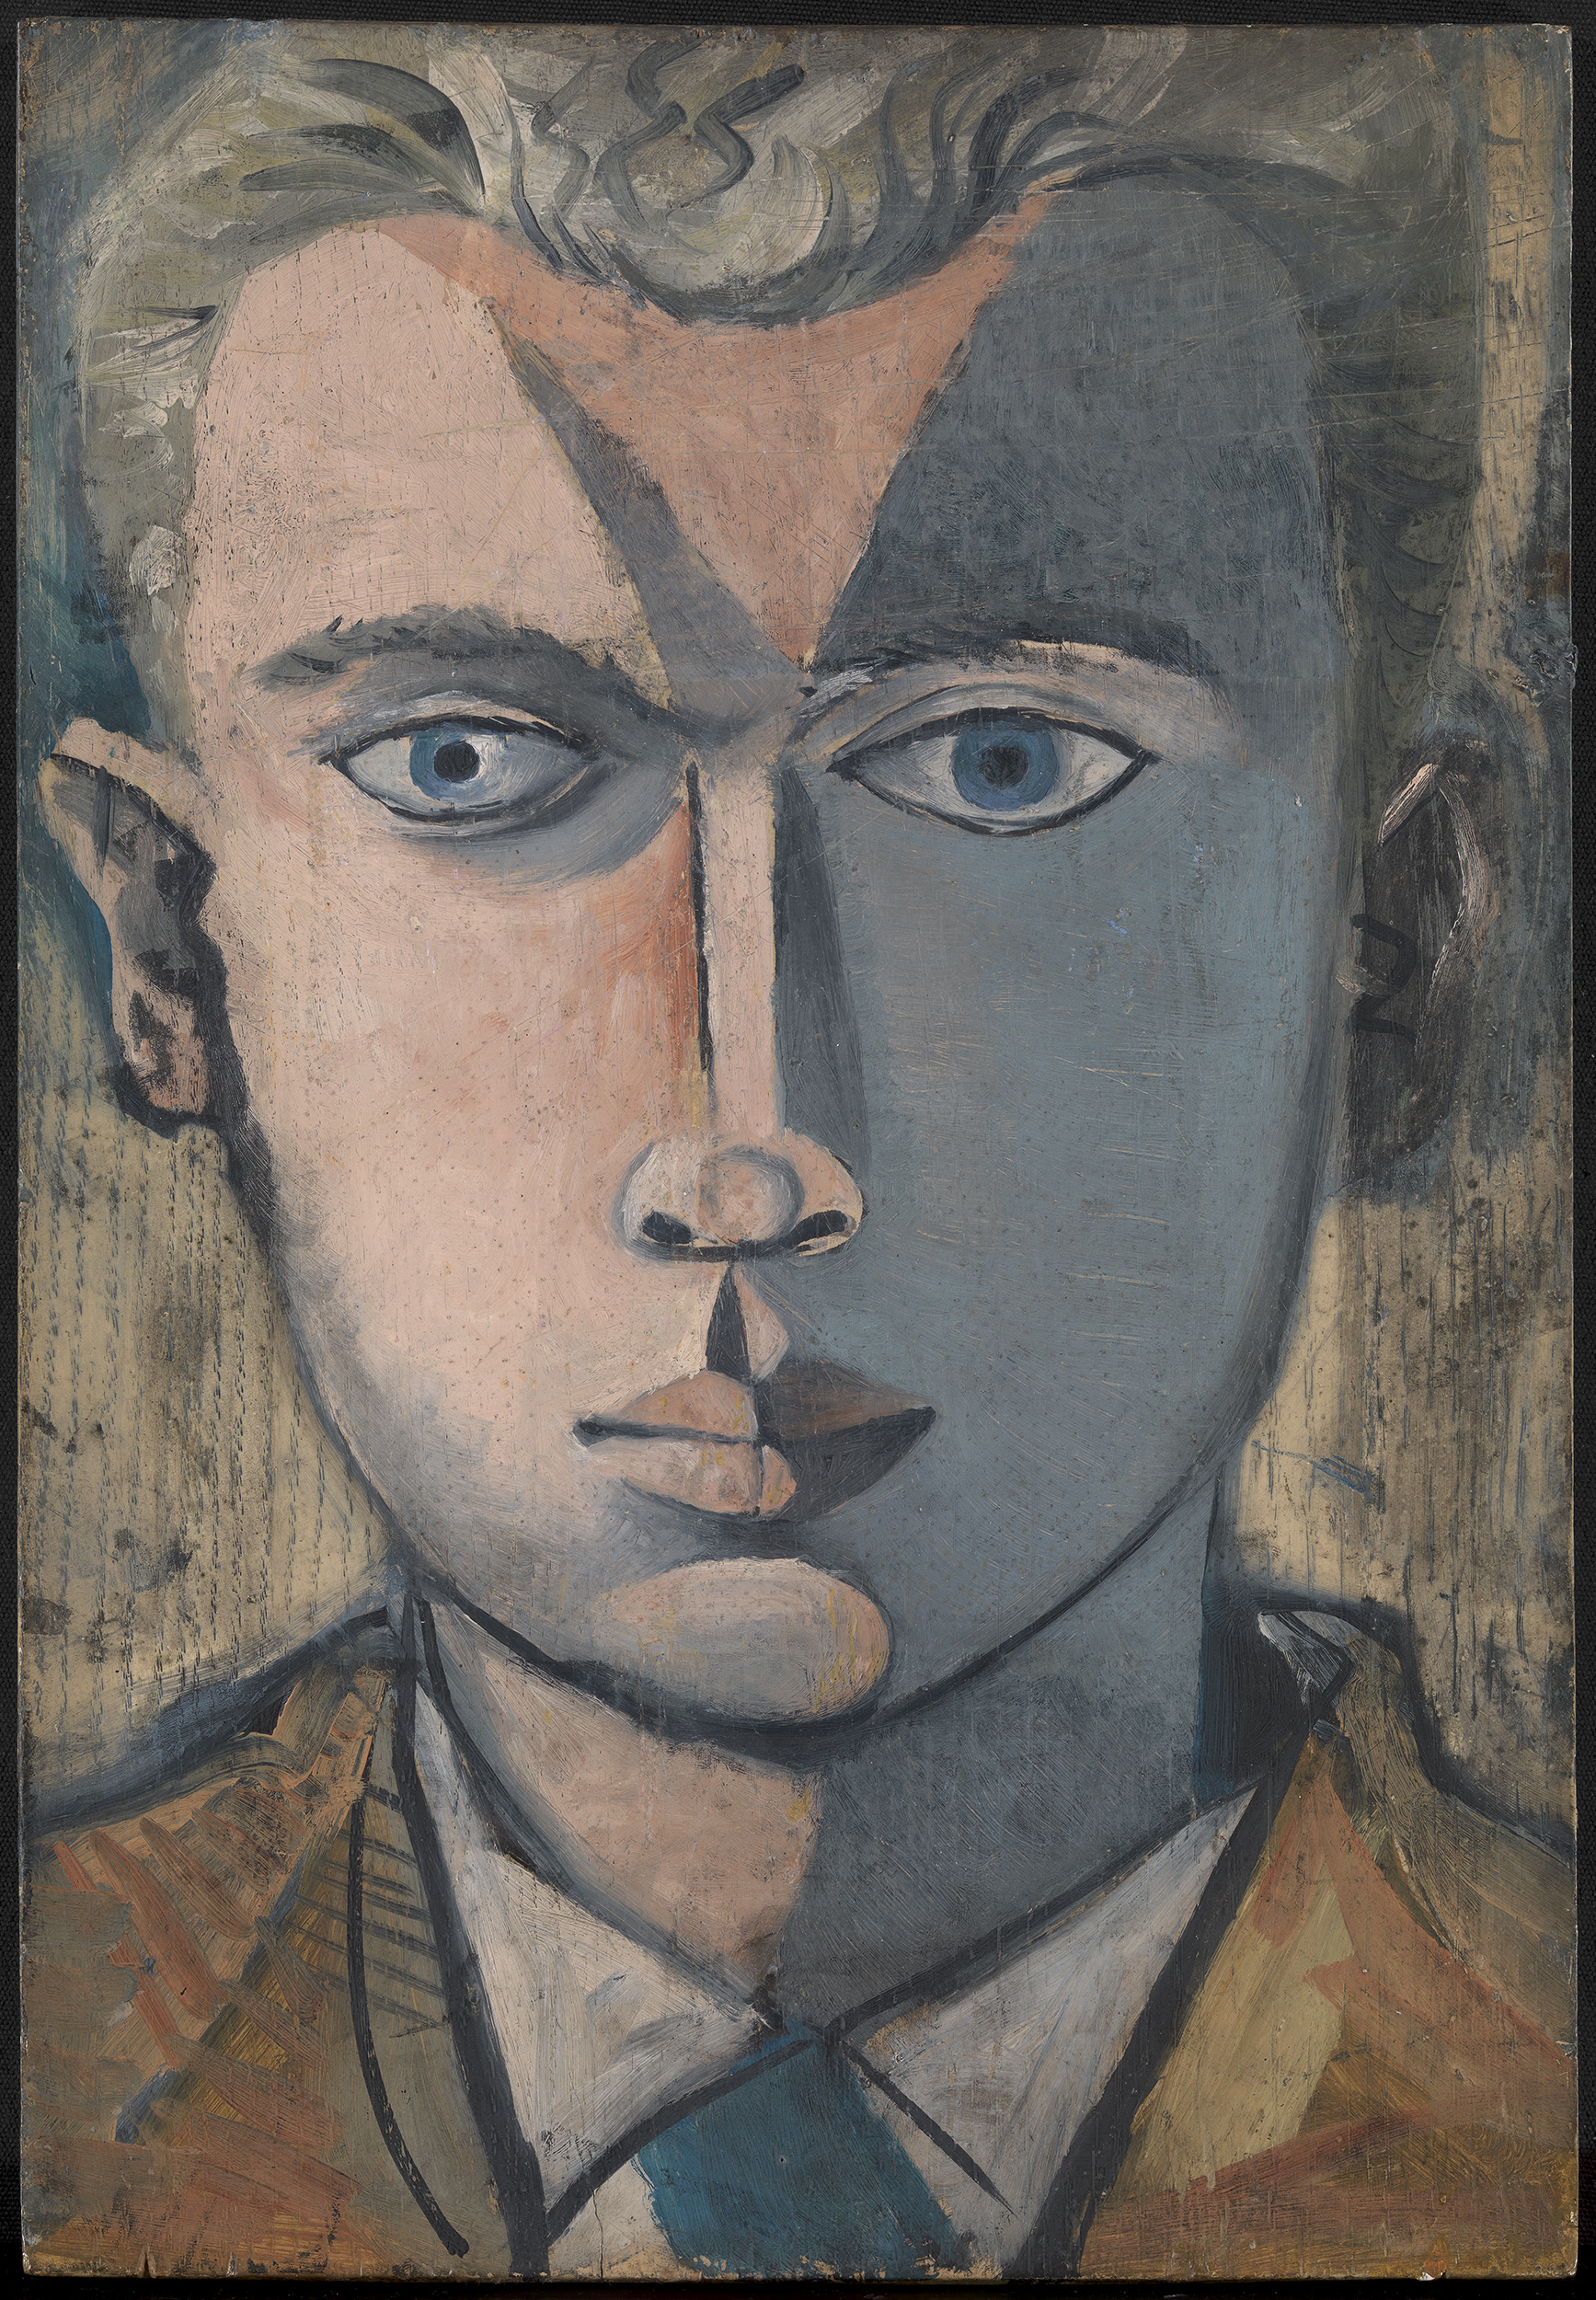 John Craxton, Head of Man, 1948-48, acrylic on board, 44 x 30 cm. Courtesy of Osborne Samuel.